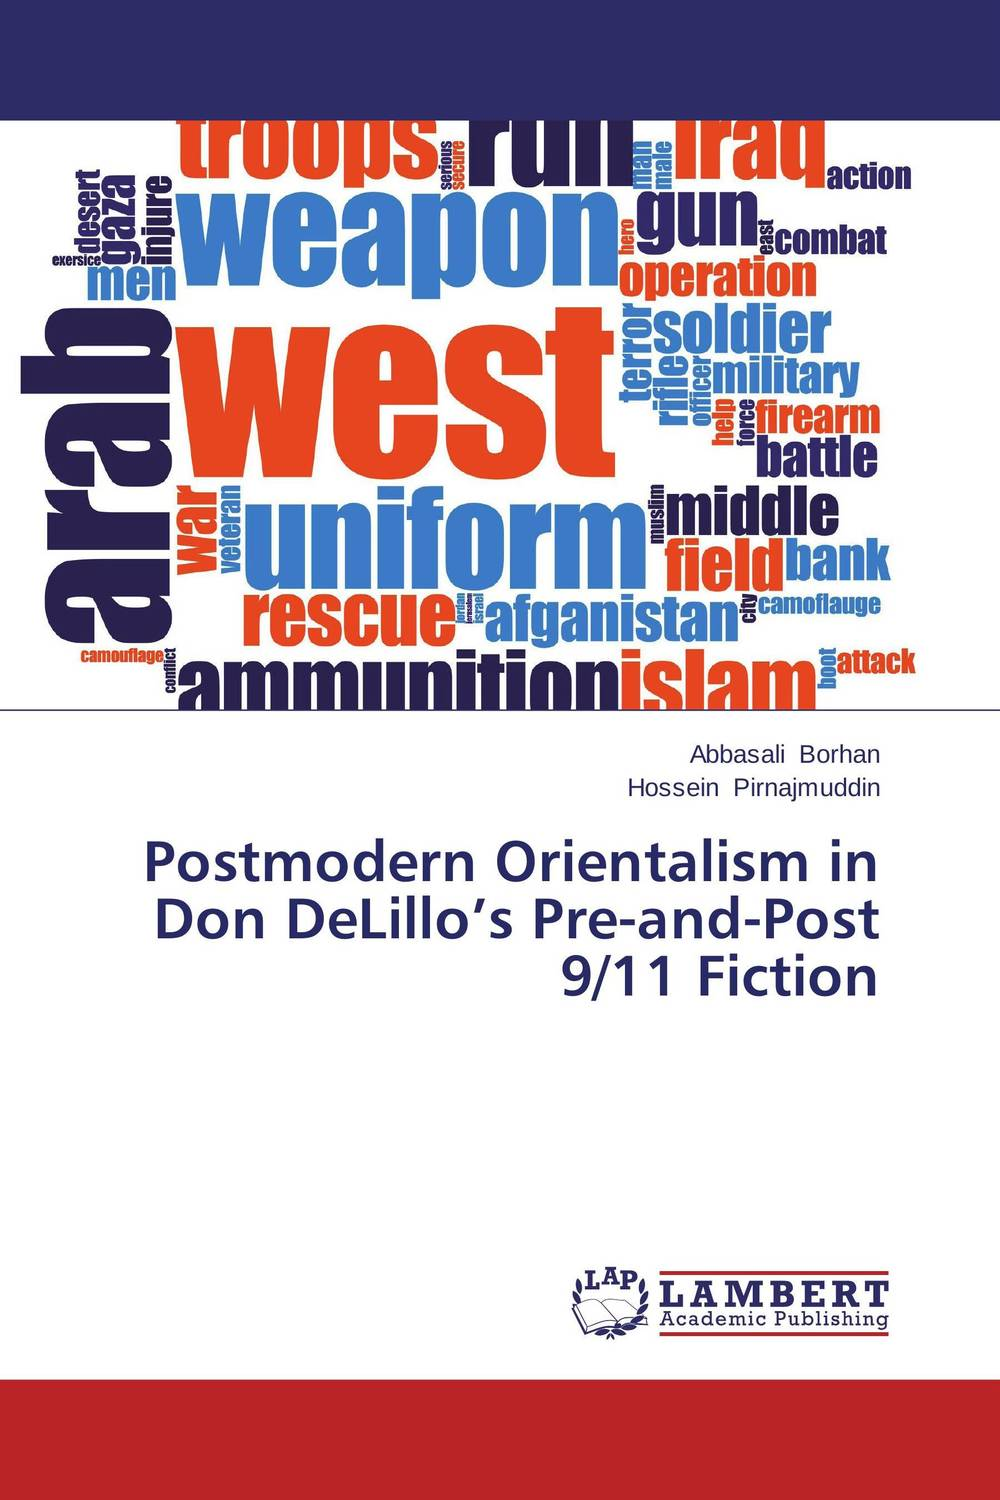 Postmodern Orientalism in Don DeLillo's Pre-and-Post 9/11 Fiction john o brien the review of contemporary fiction – claude simon 5–1